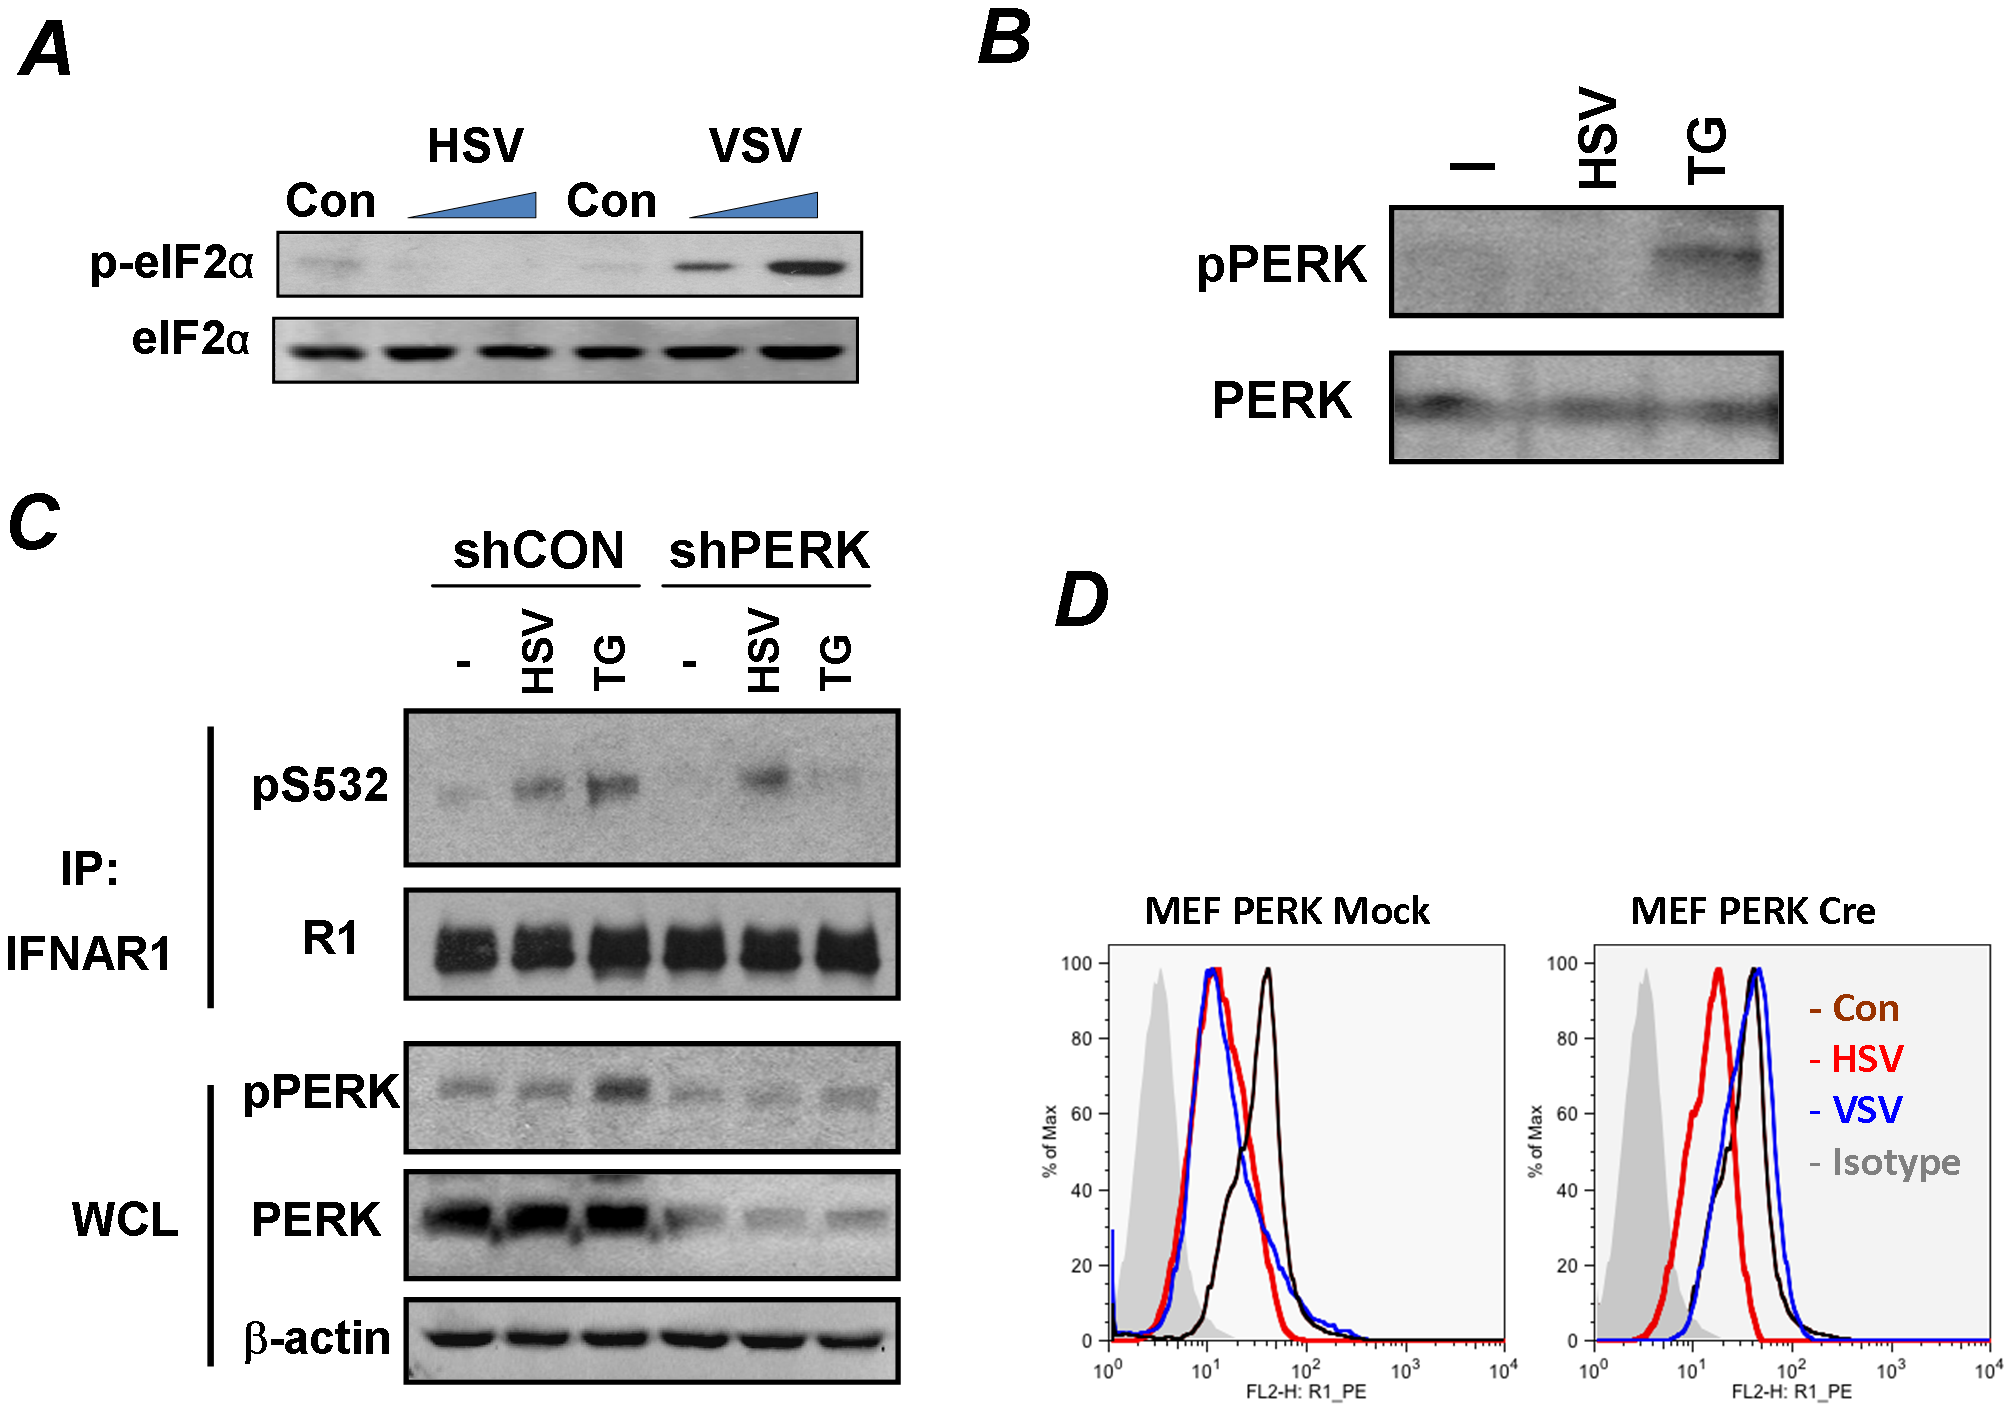 Phosphorylation-dependent downregulation of IFNAR1 by HSV occurs in a PERK-independent manner.